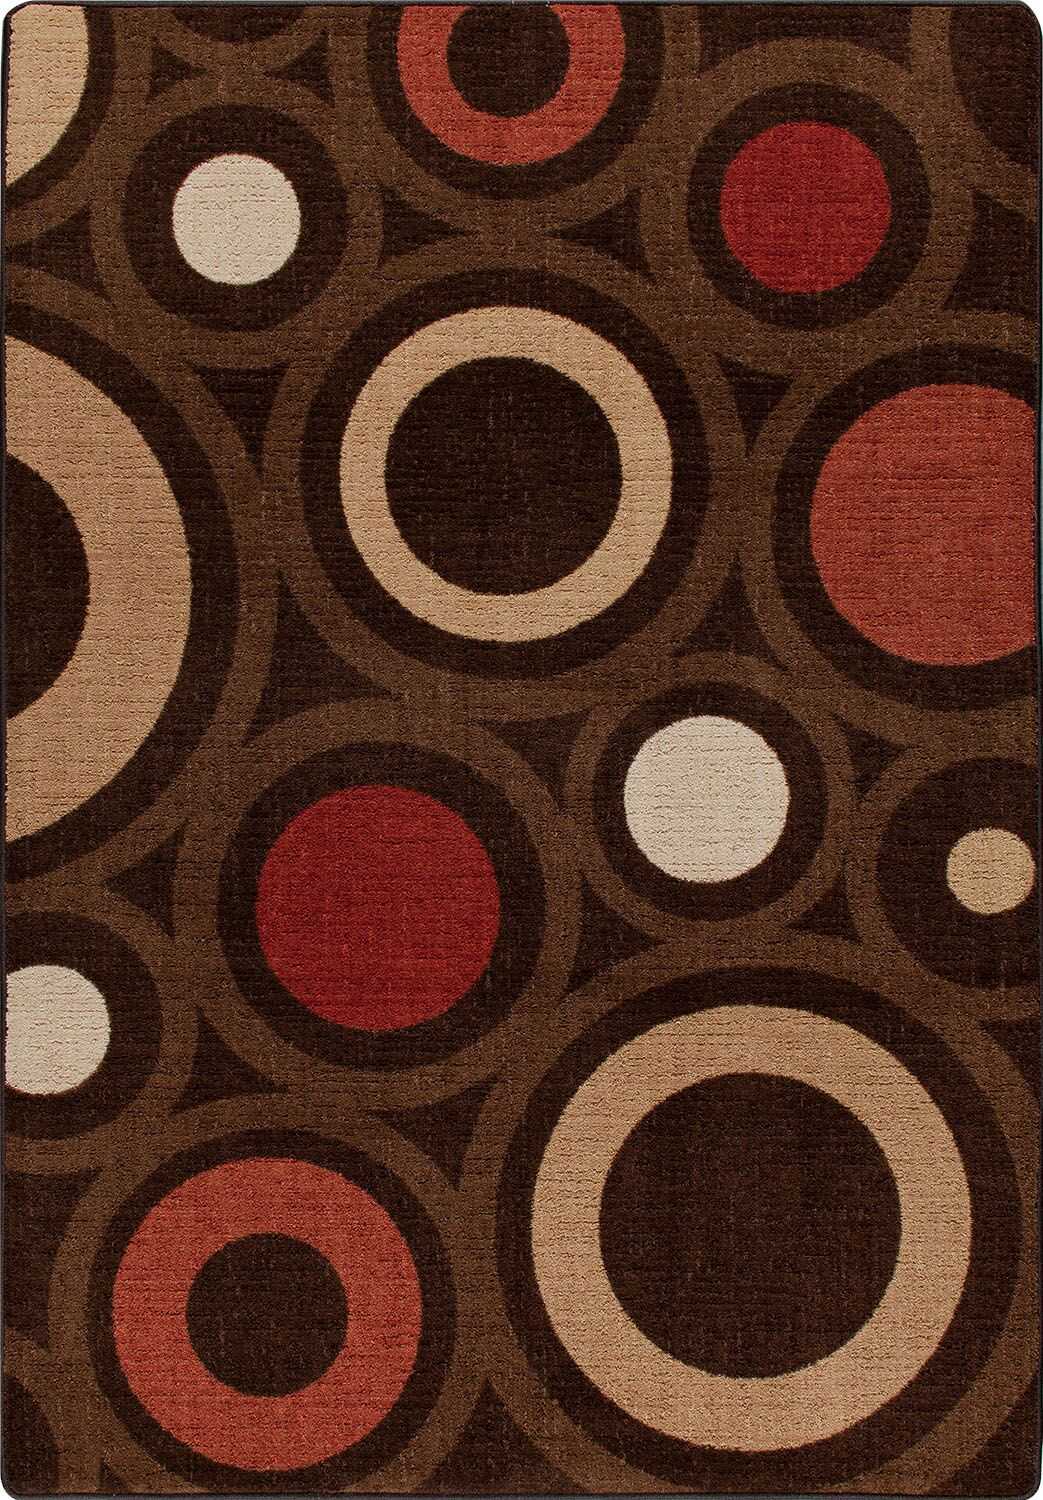 Mix and Mingle Chocolate in Focus Rug Rug Size: Rectangle 7'8